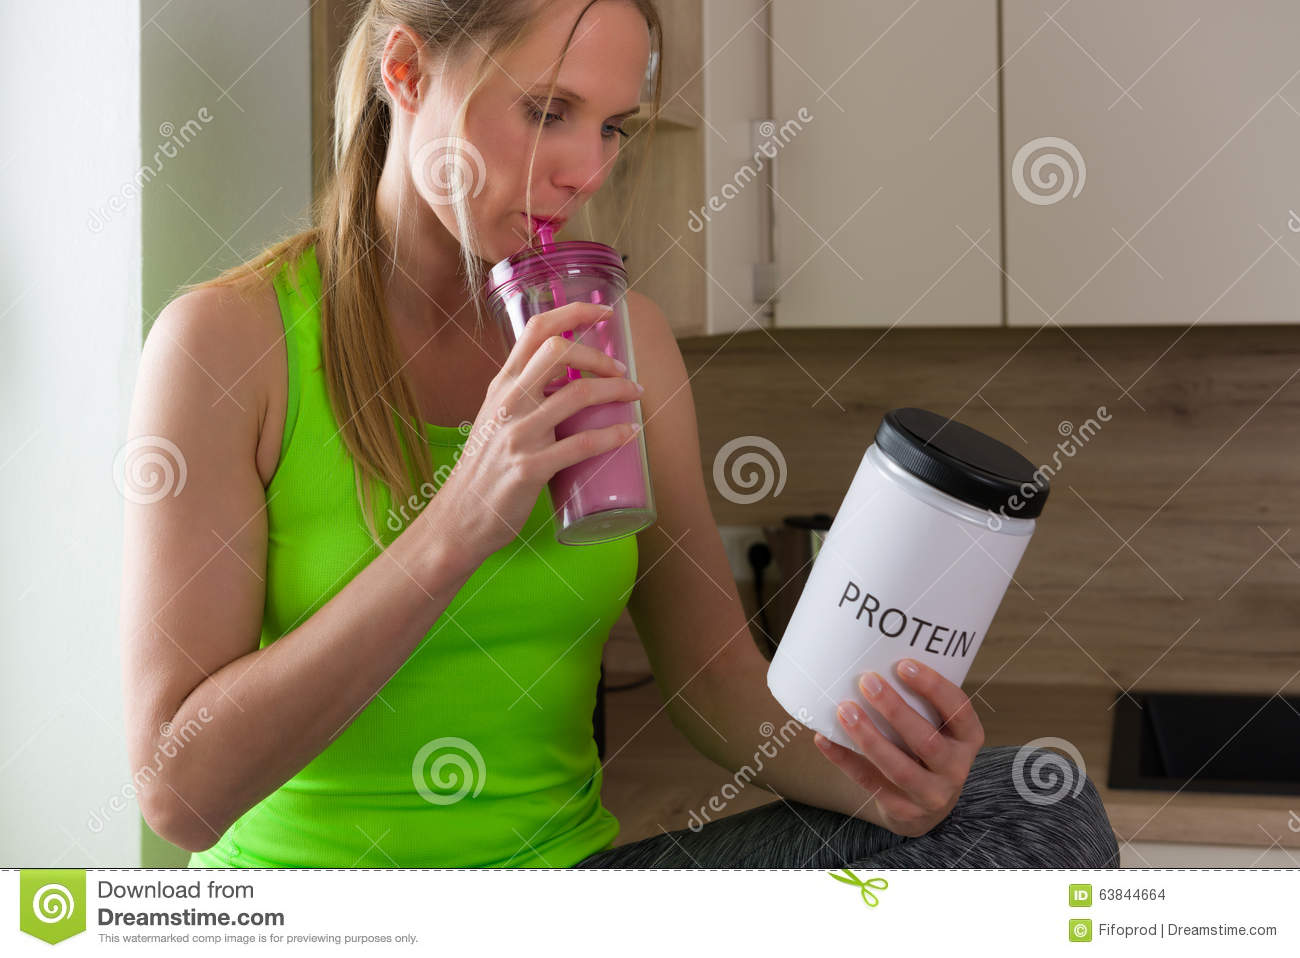 Caucasian woman in gym suit drinking protein shake in the kitchen